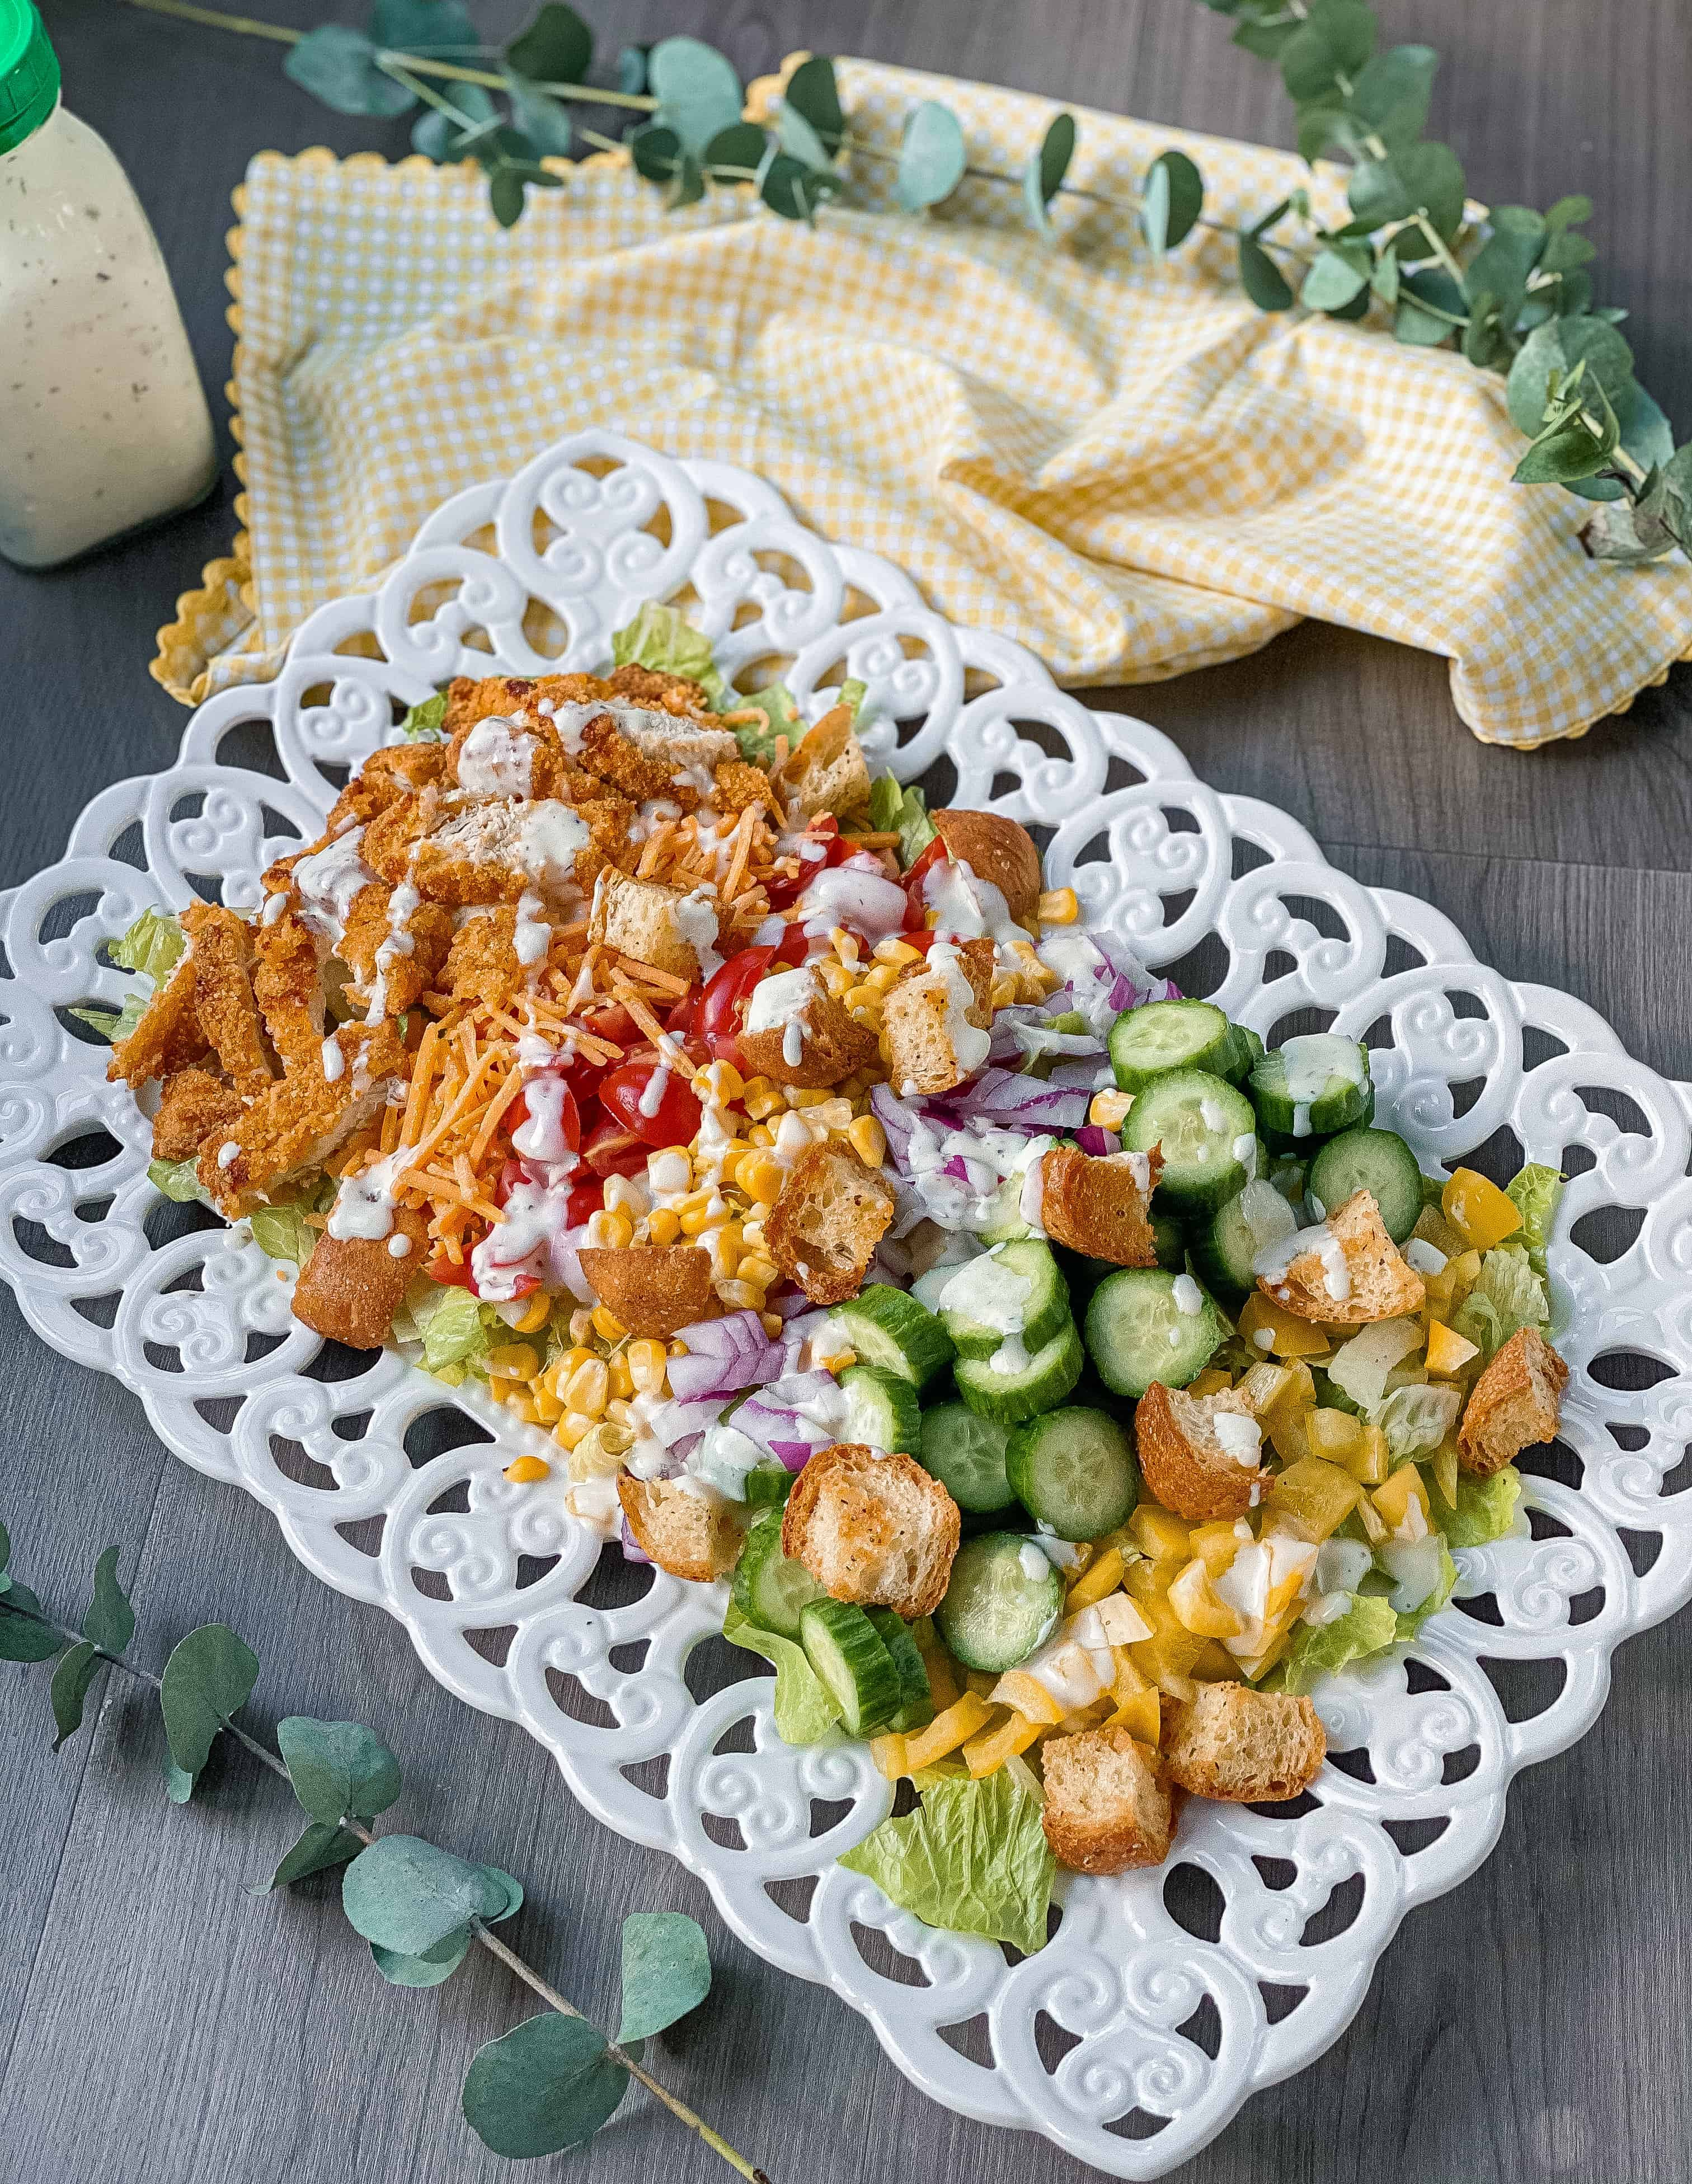 Easy Crispy Chicken Tender Dinner Salad